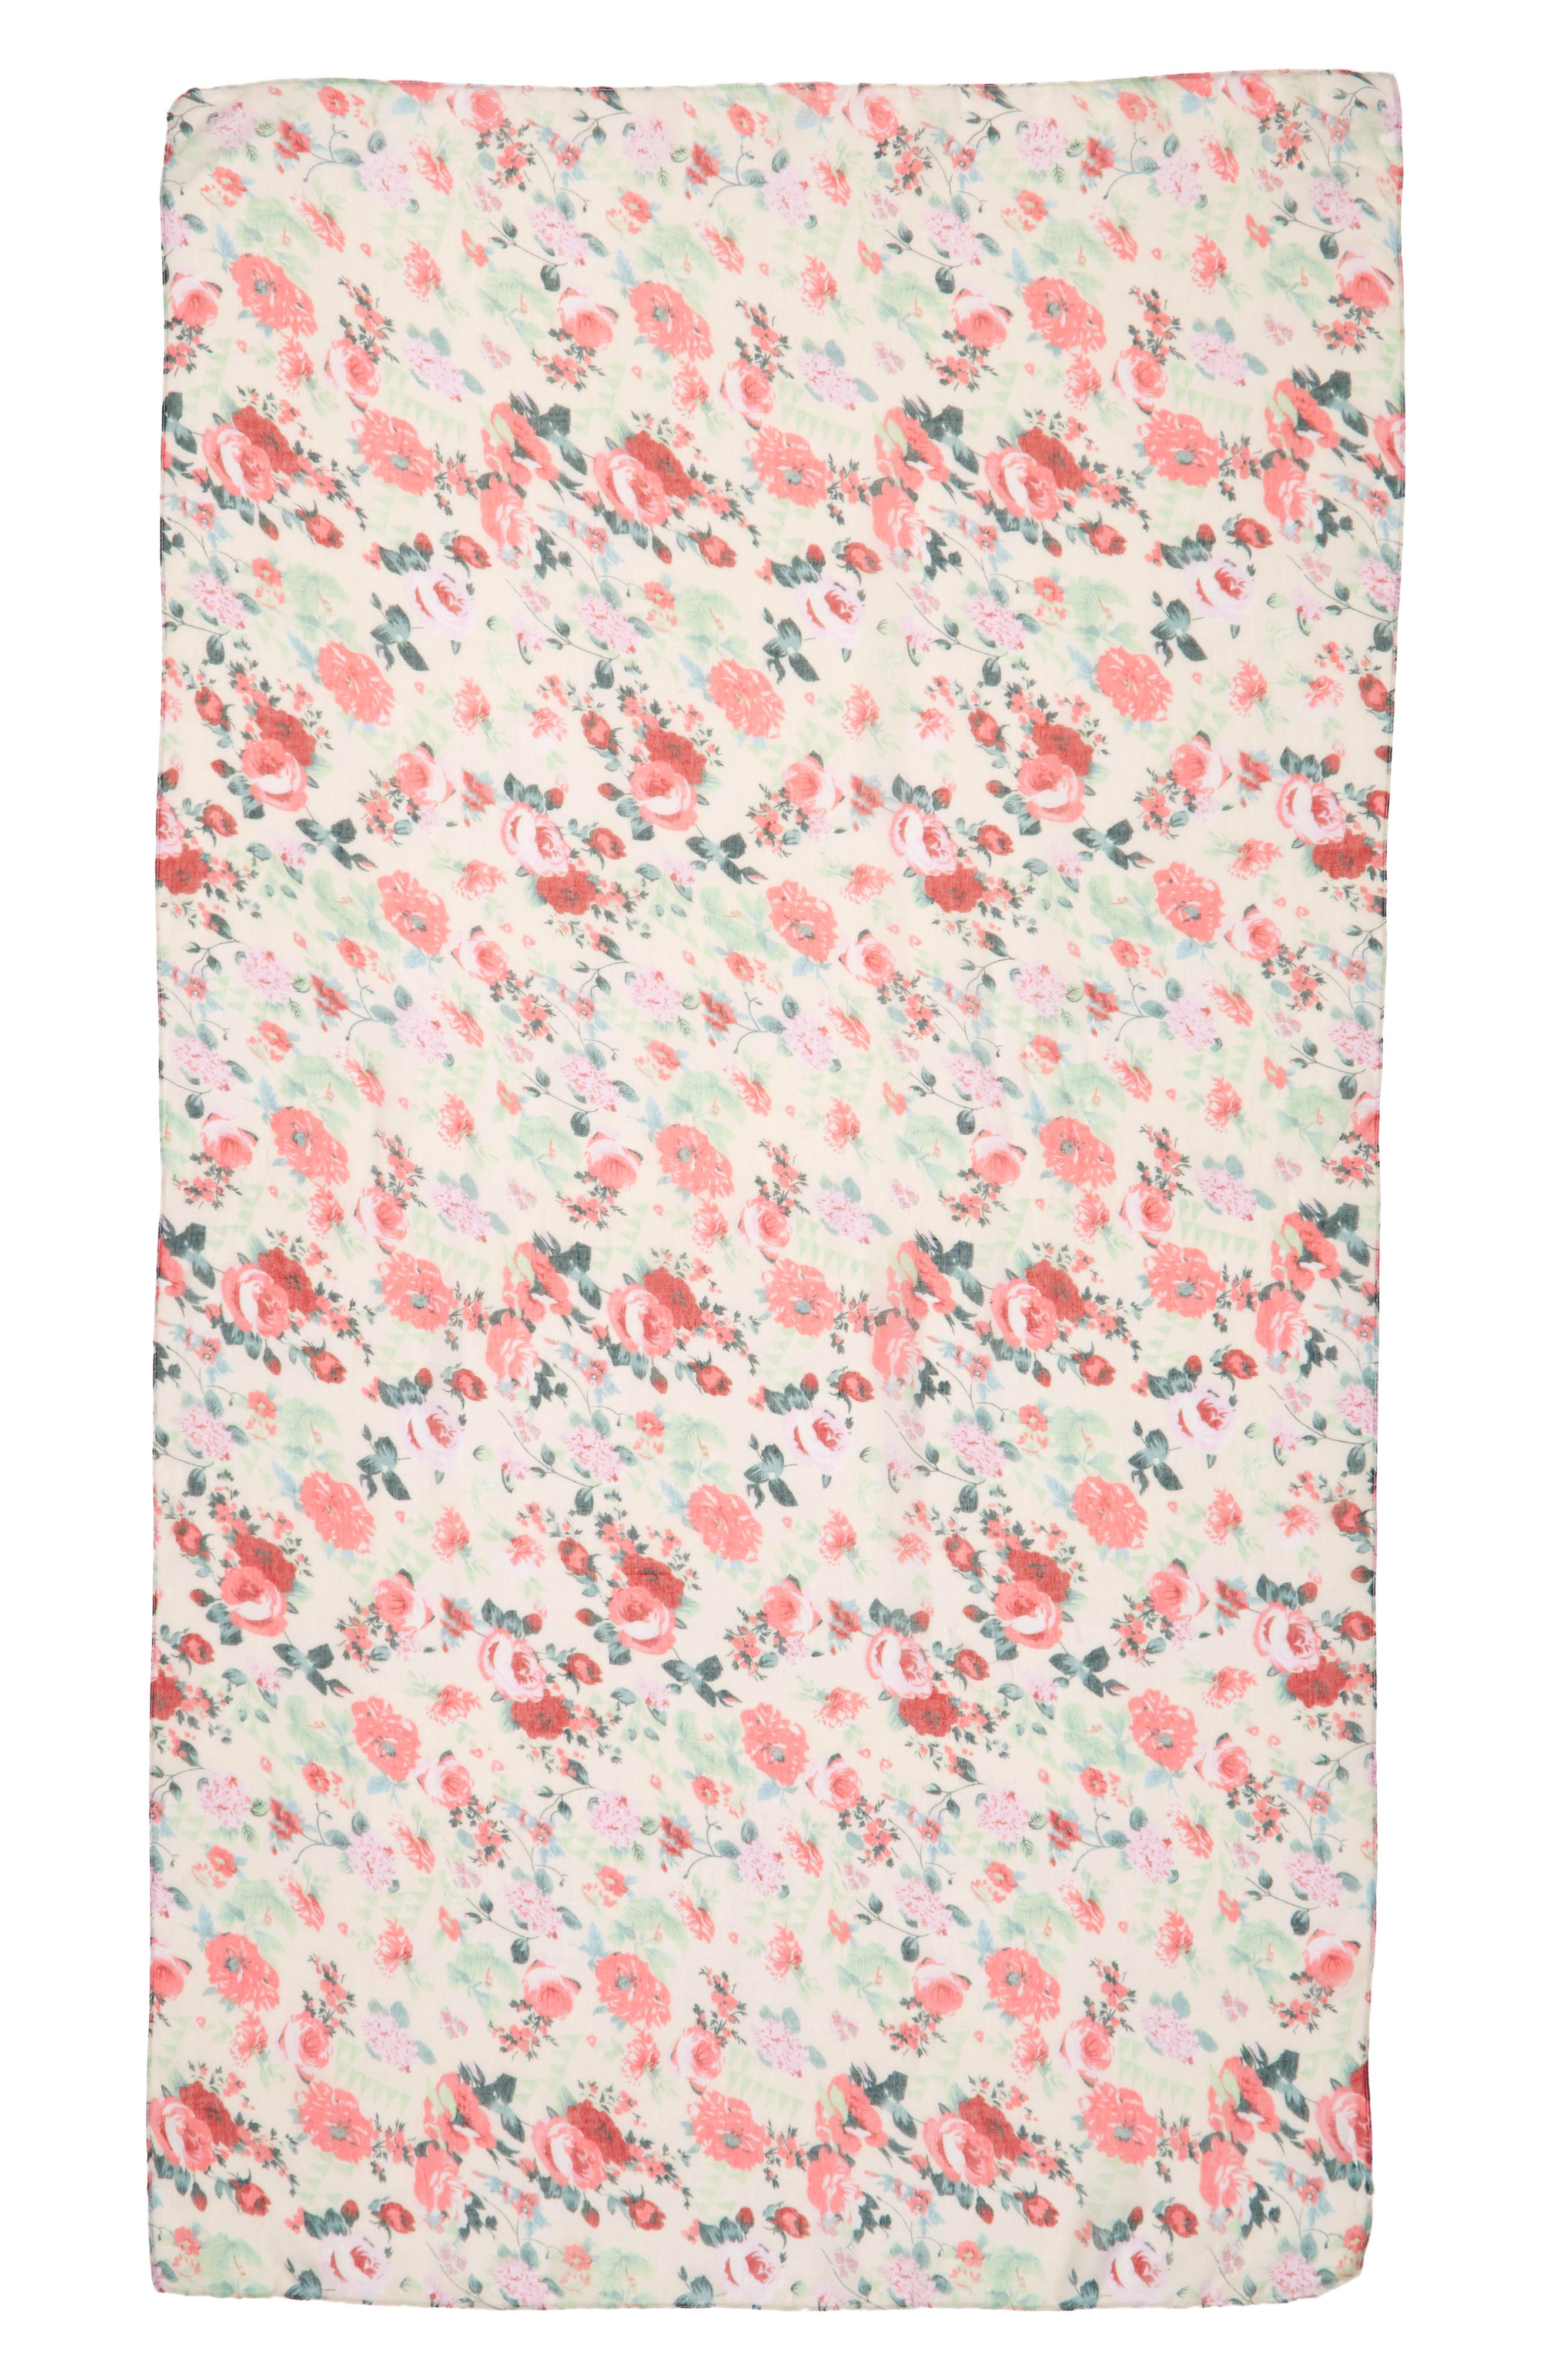 Accessory Collective Floral Print Scarf,                             Alternate thumbnail 2, color,                             100